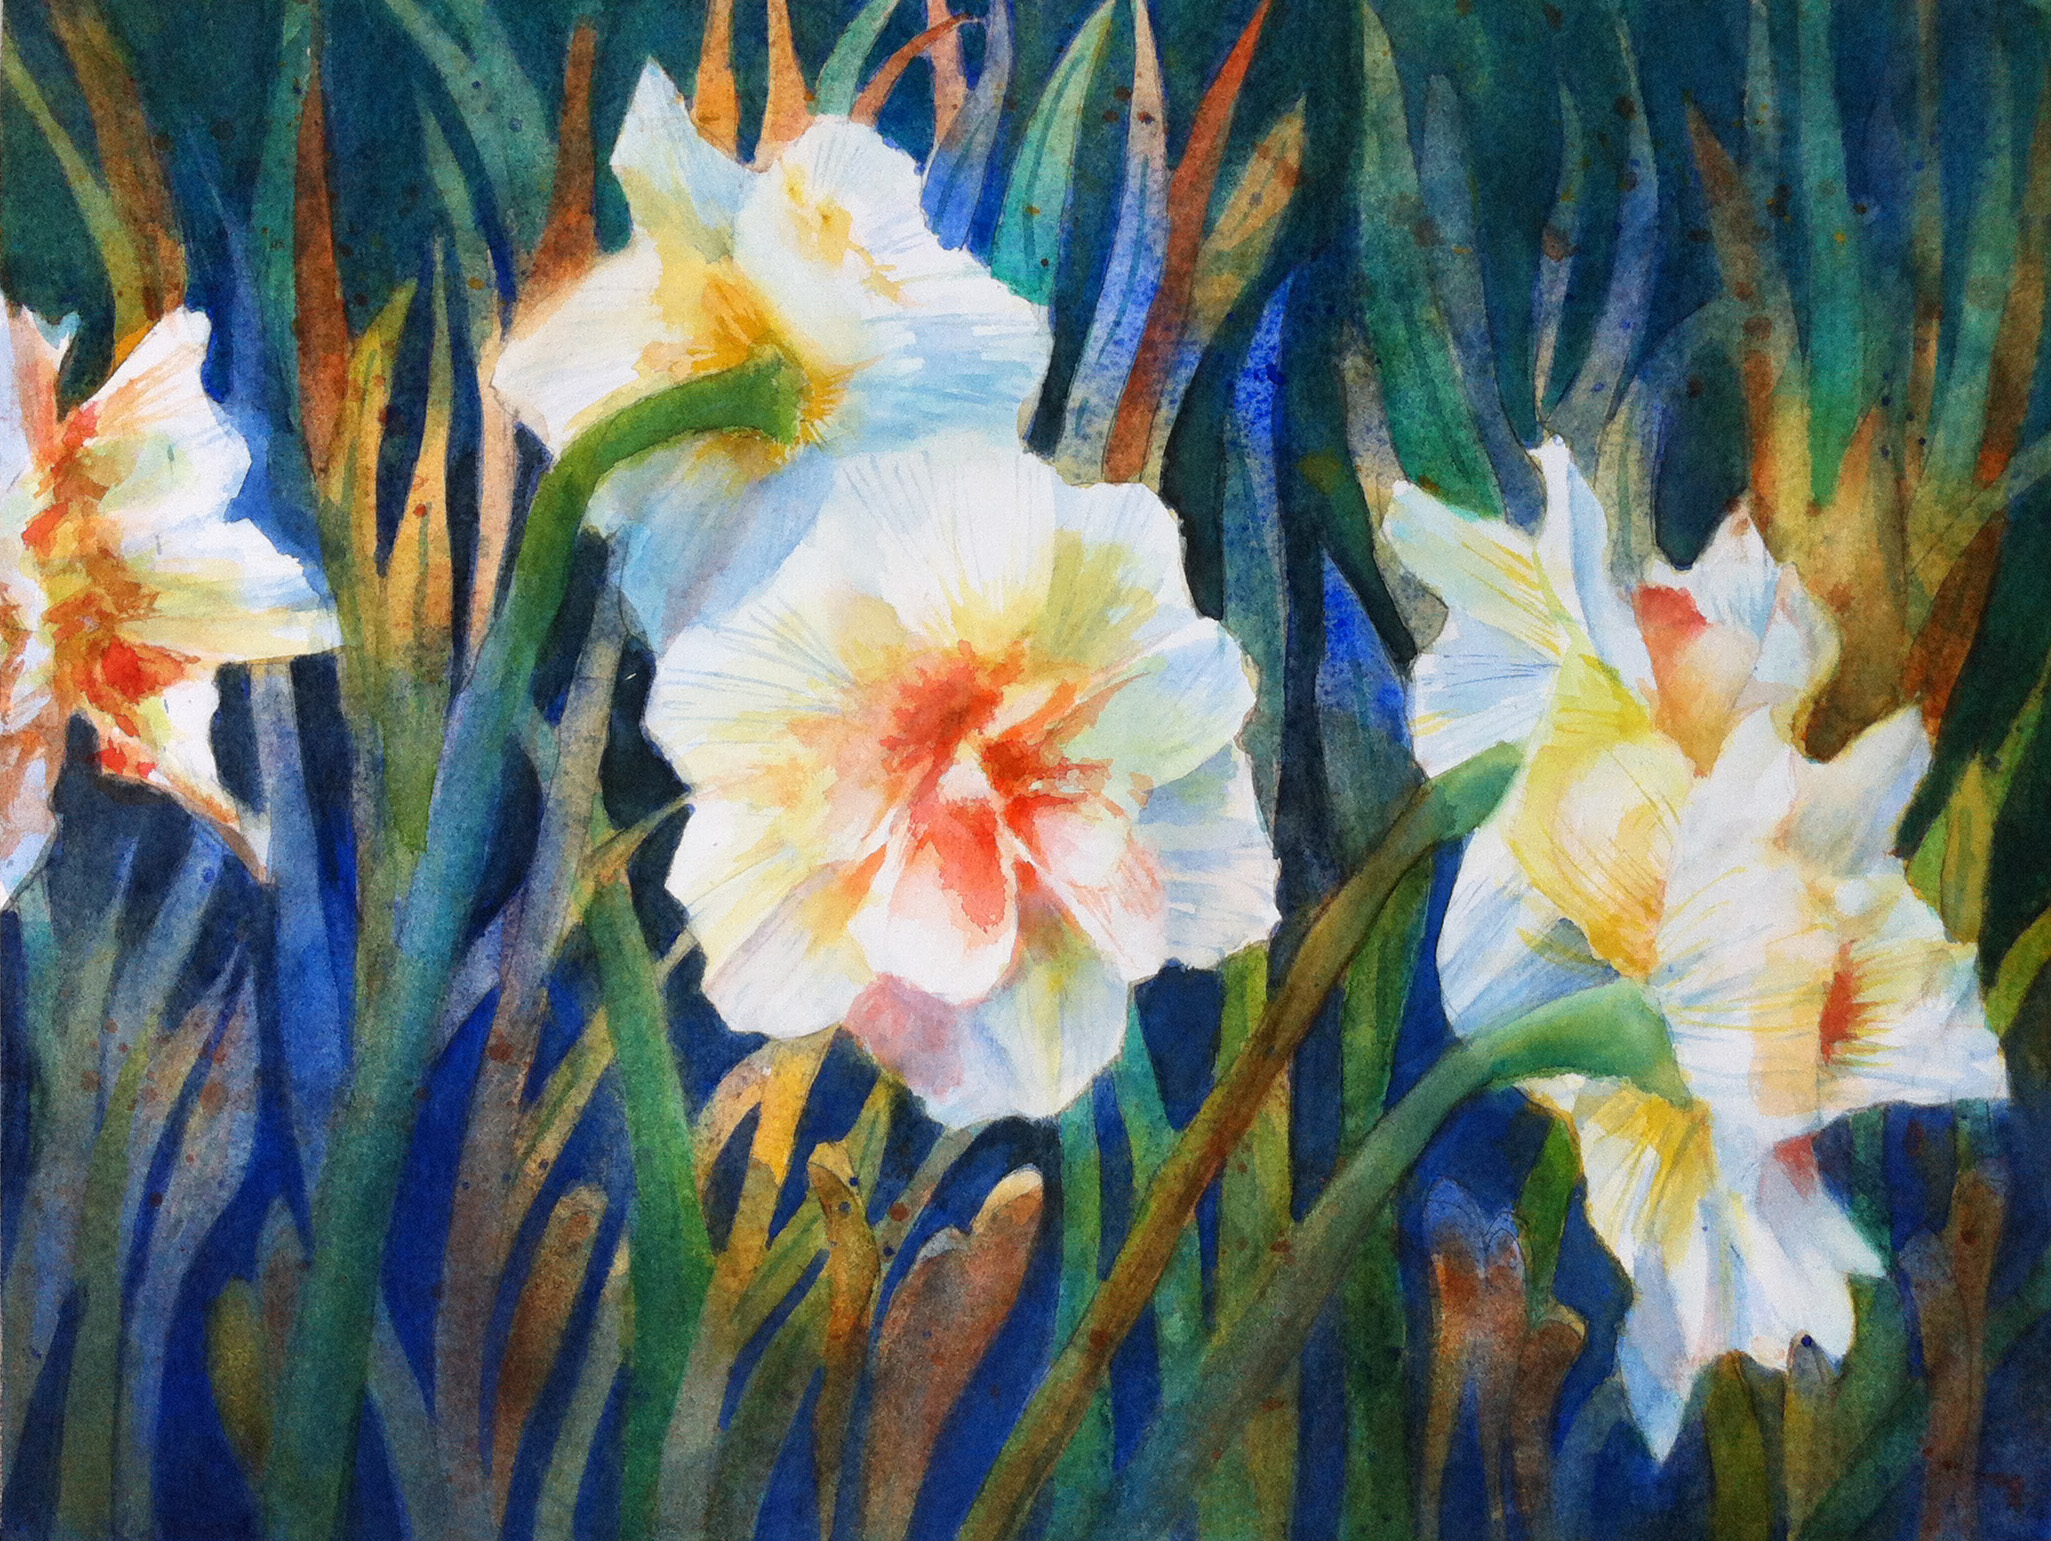 Double Daffodils 12 x 16 $150